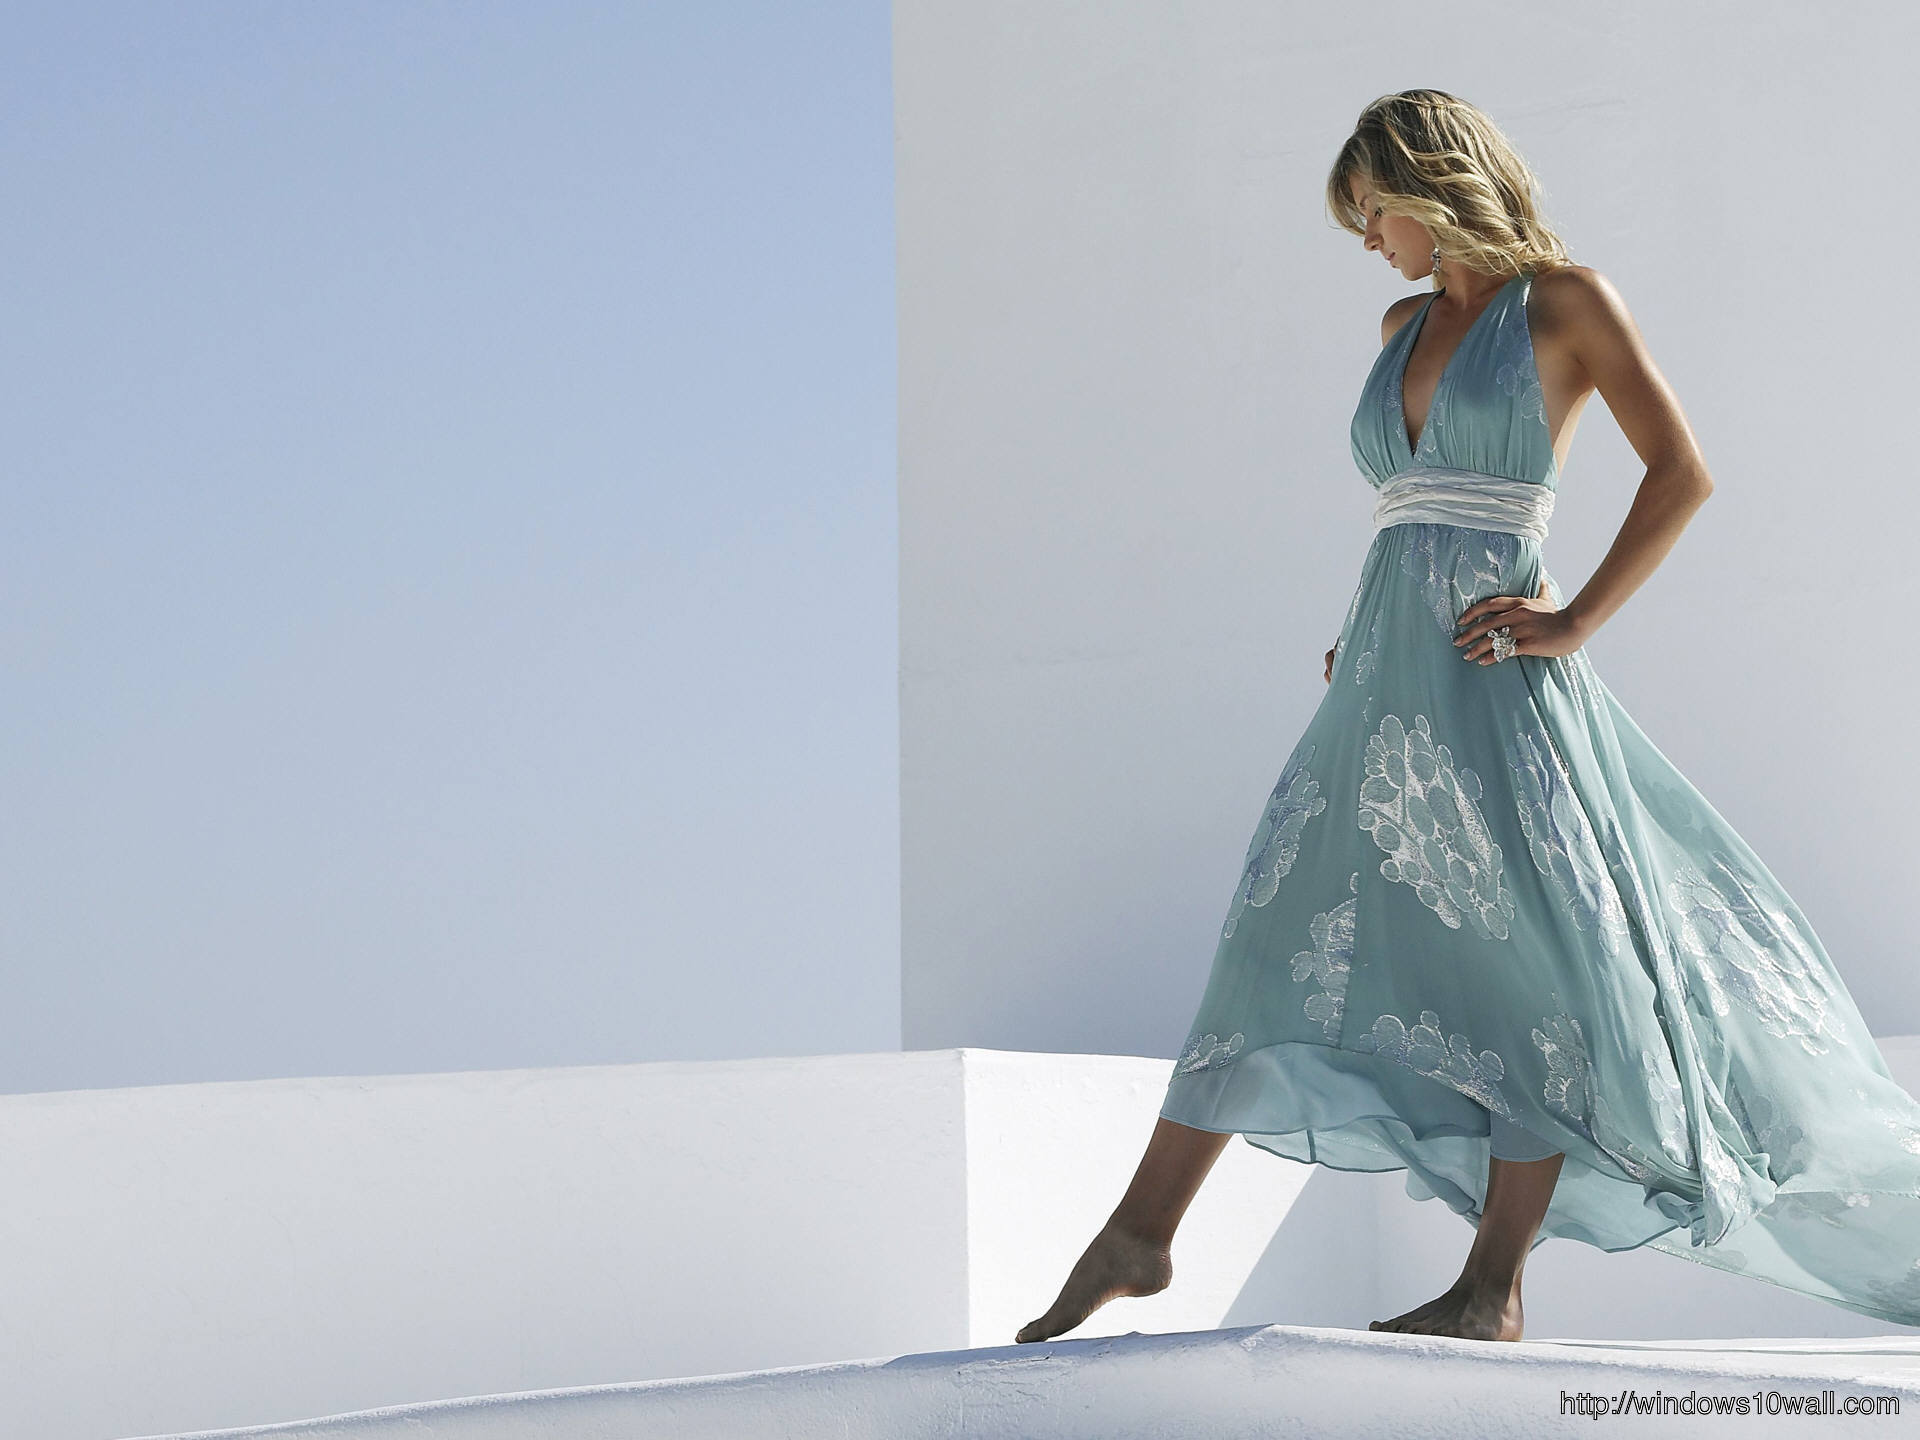 maria kirilenko cool background wallpaper